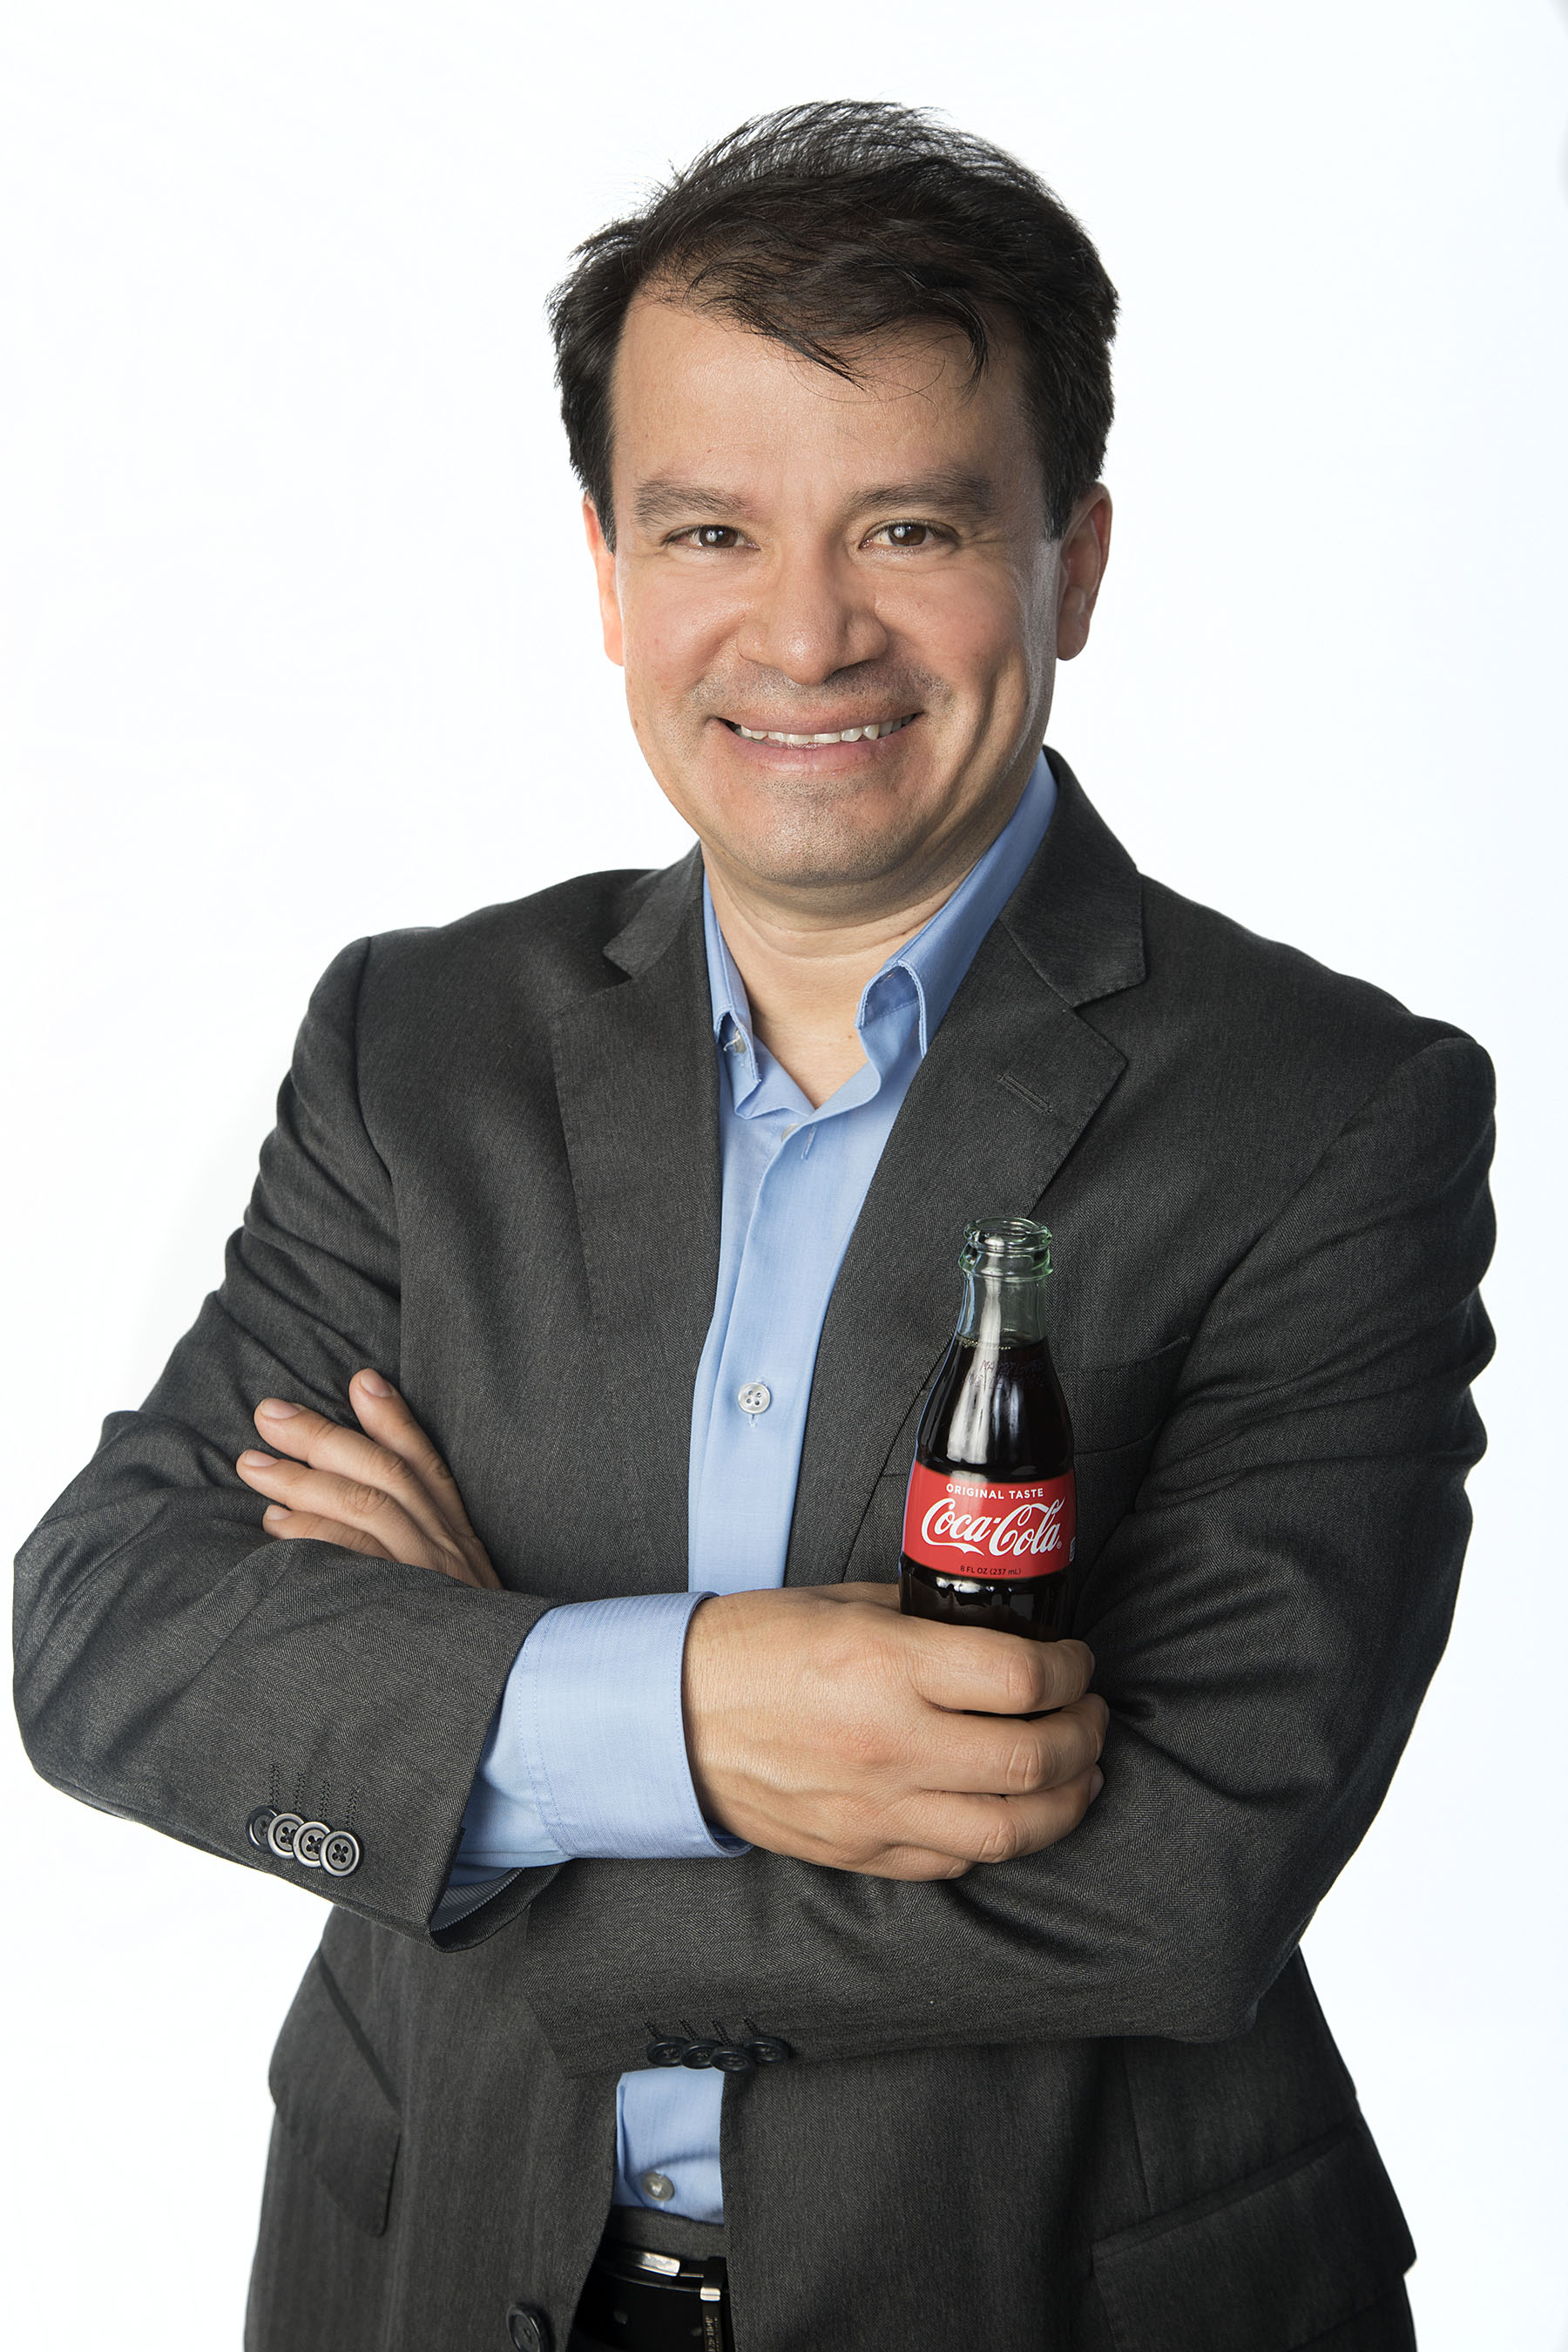 Javier Meza, vicepresidente de Marketing de Coca-Cola Latinoamérica